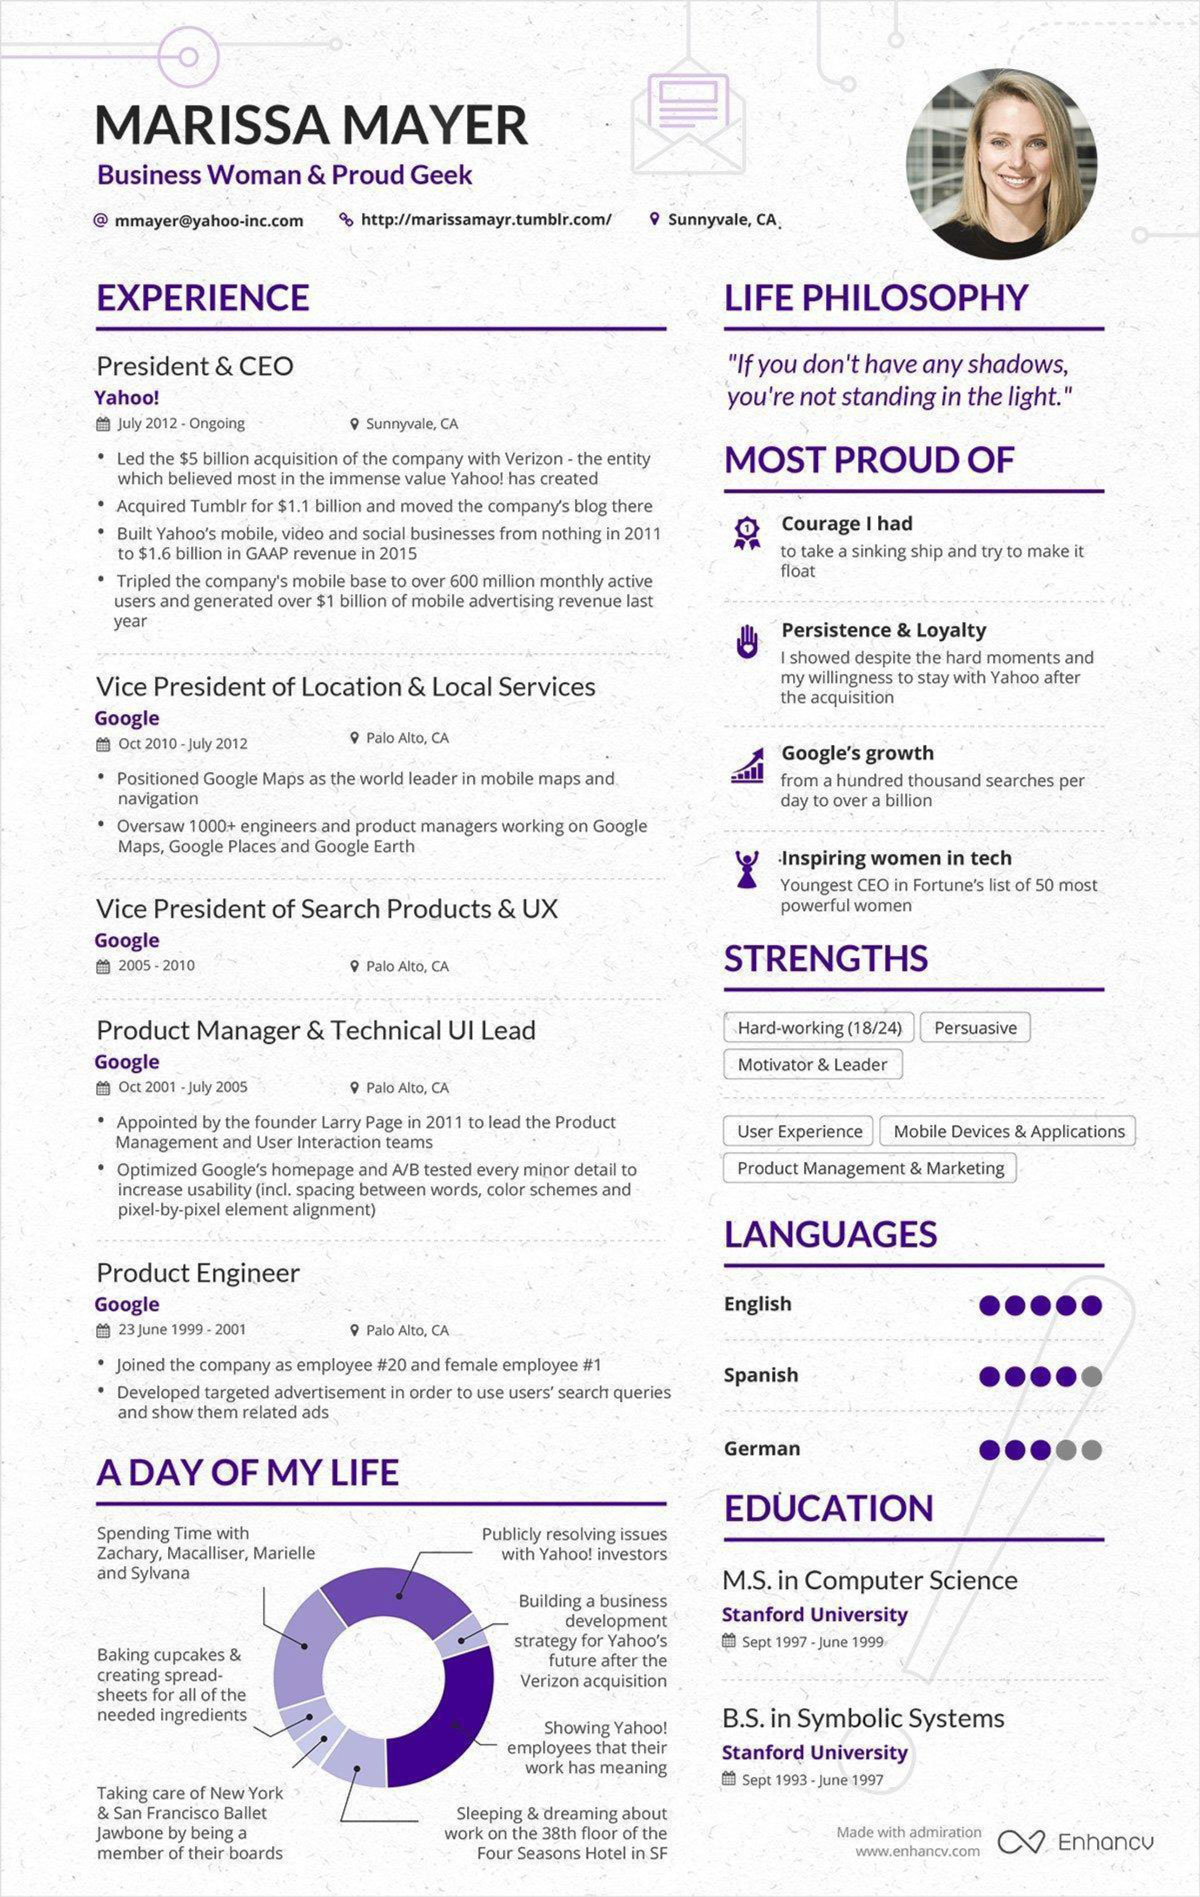 Marissa Mayer's Resume Has Gone Viral Again  But Is It All It's